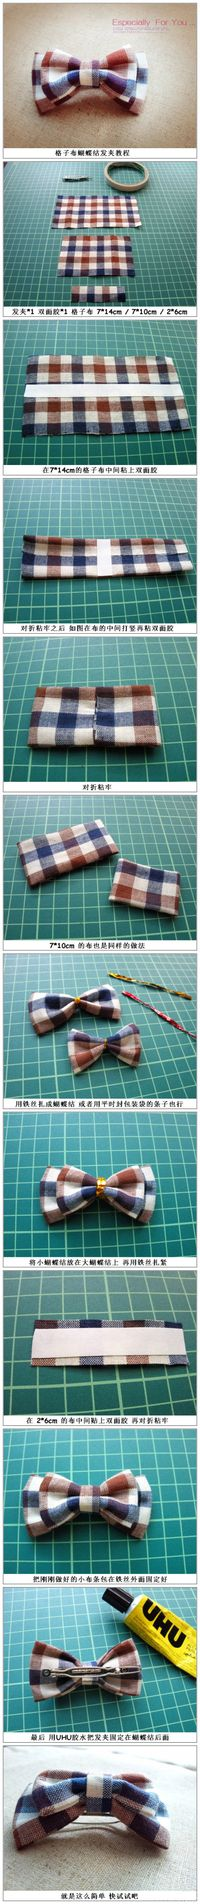 .DIY, but only until the bow tie